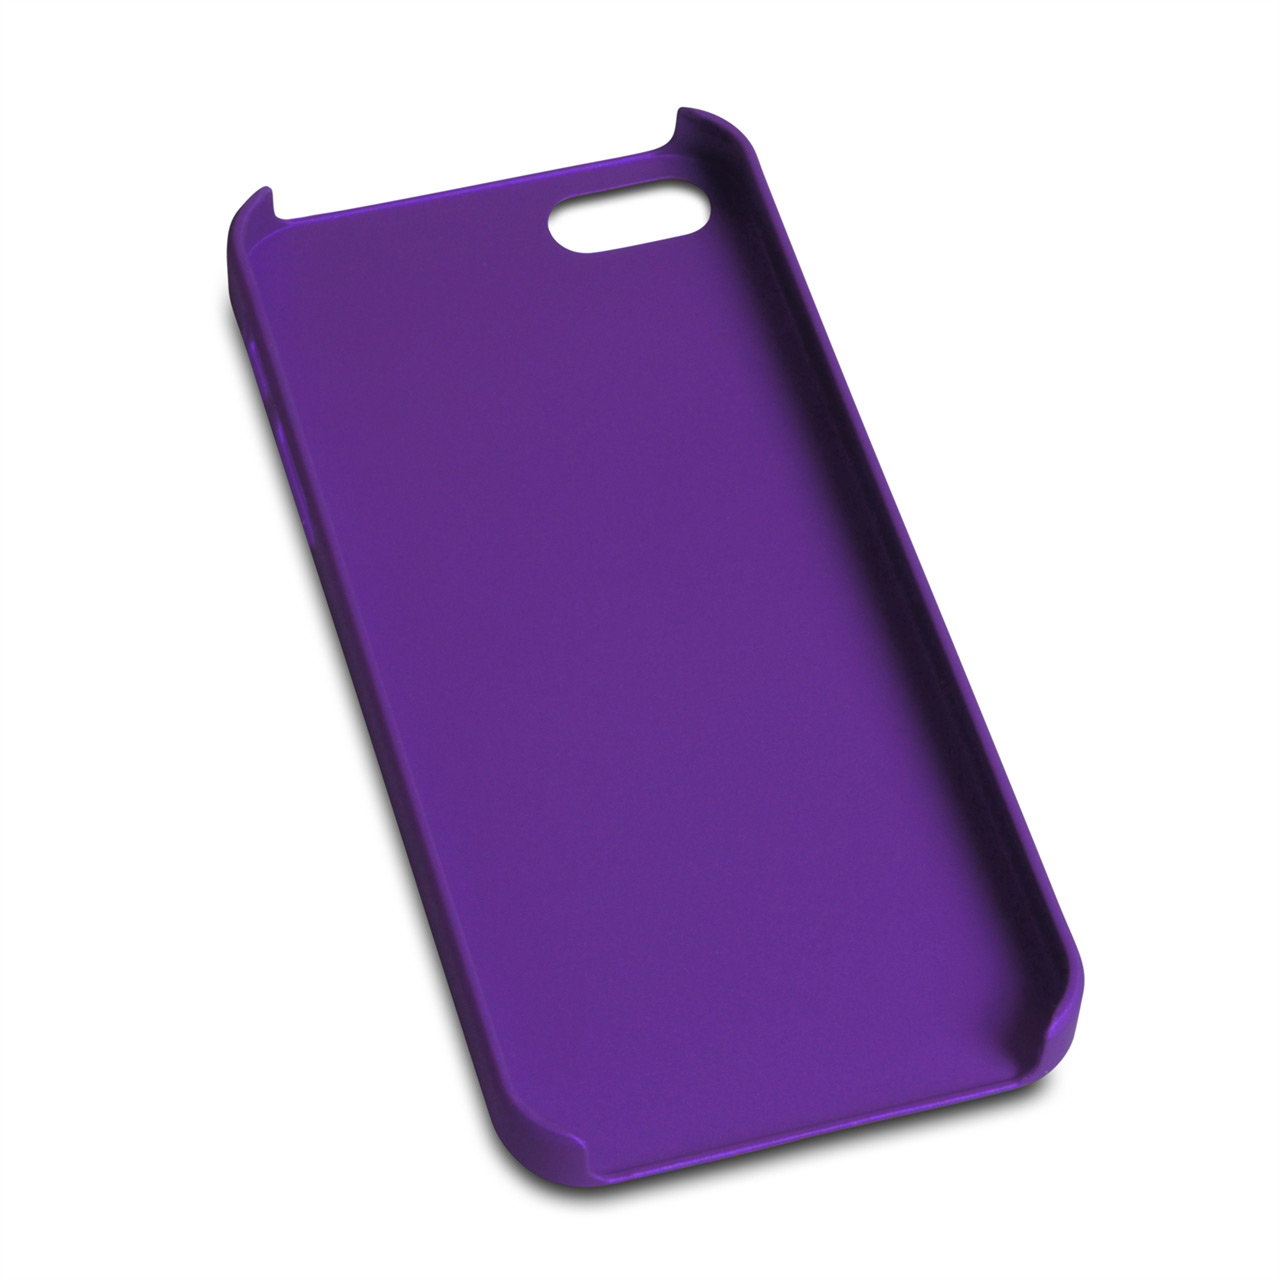 YouSave Accessories iPhone 5 / 5S Purple Hard Hybrid Case